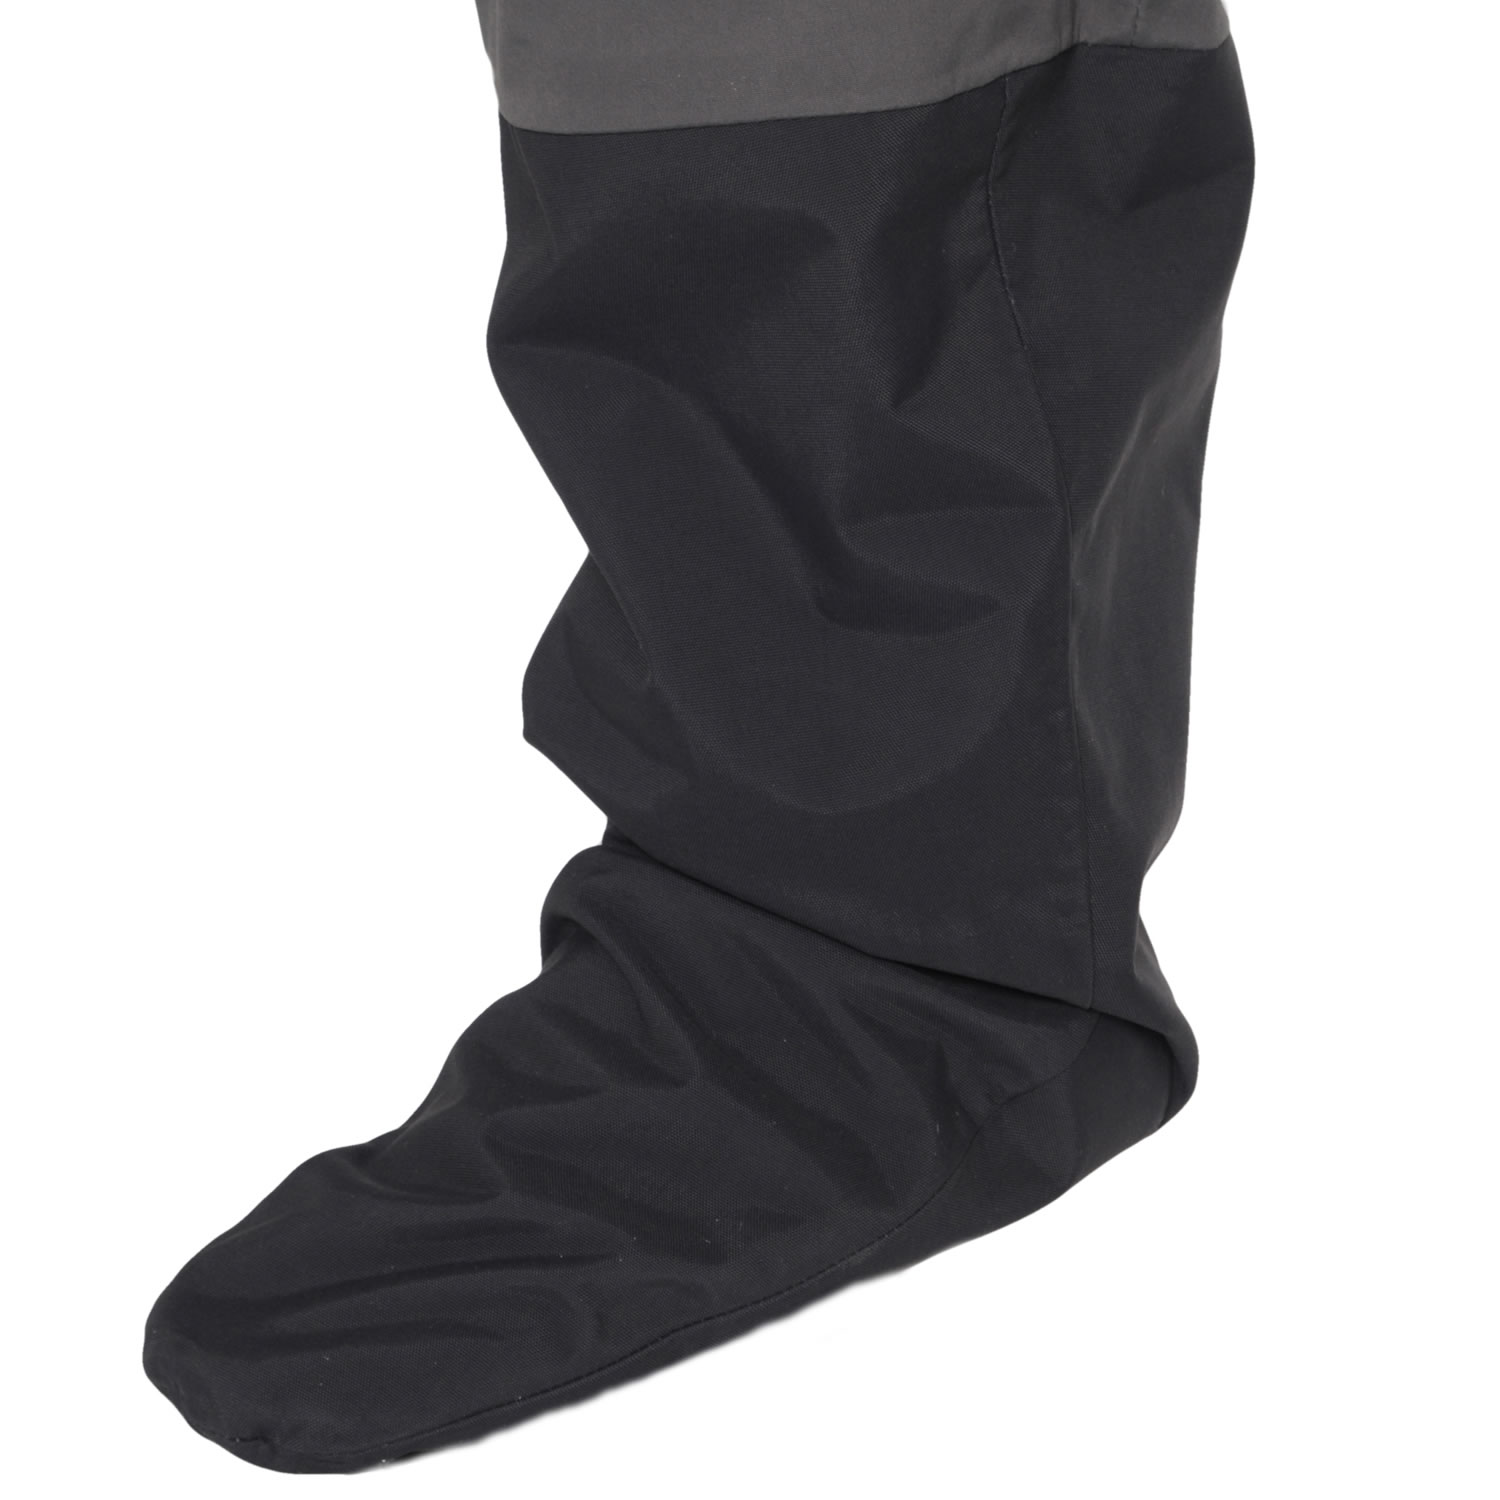 Nookie Evolution Dry Trousers Socks